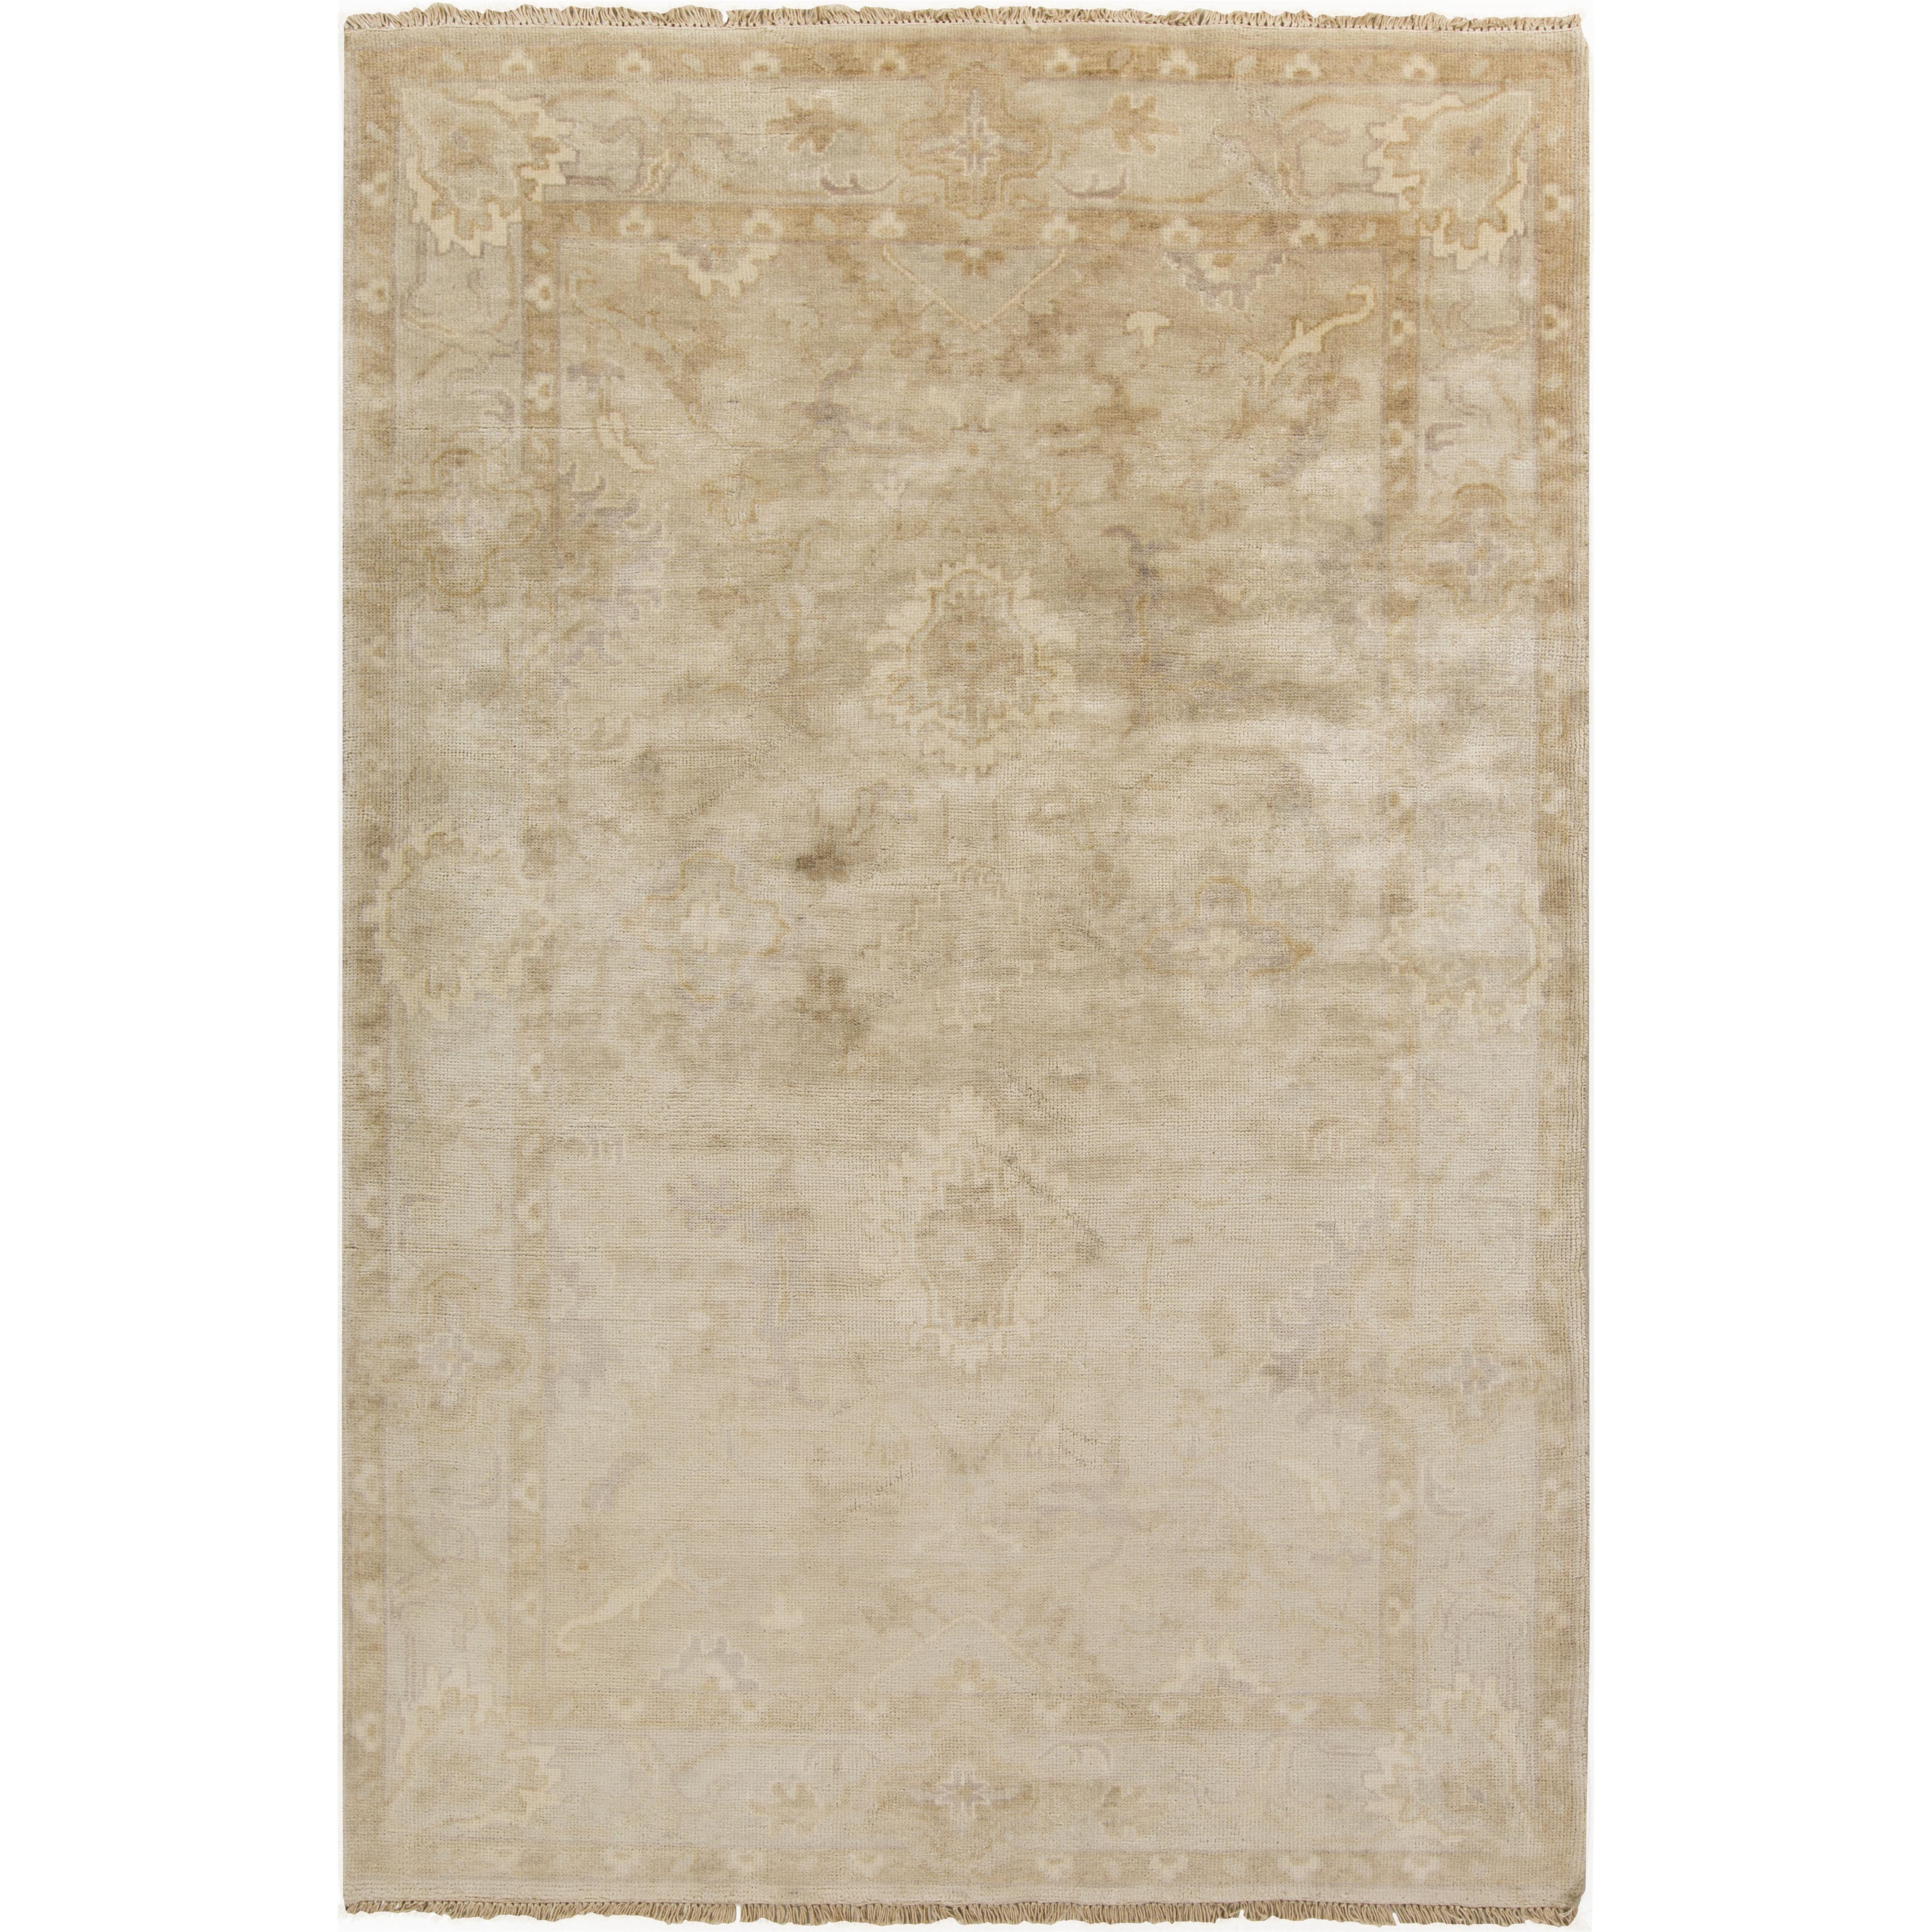 "Surya Rugs Hillcrest 5'6"" x 8'6"" - Item Number: HIL9018-5686"